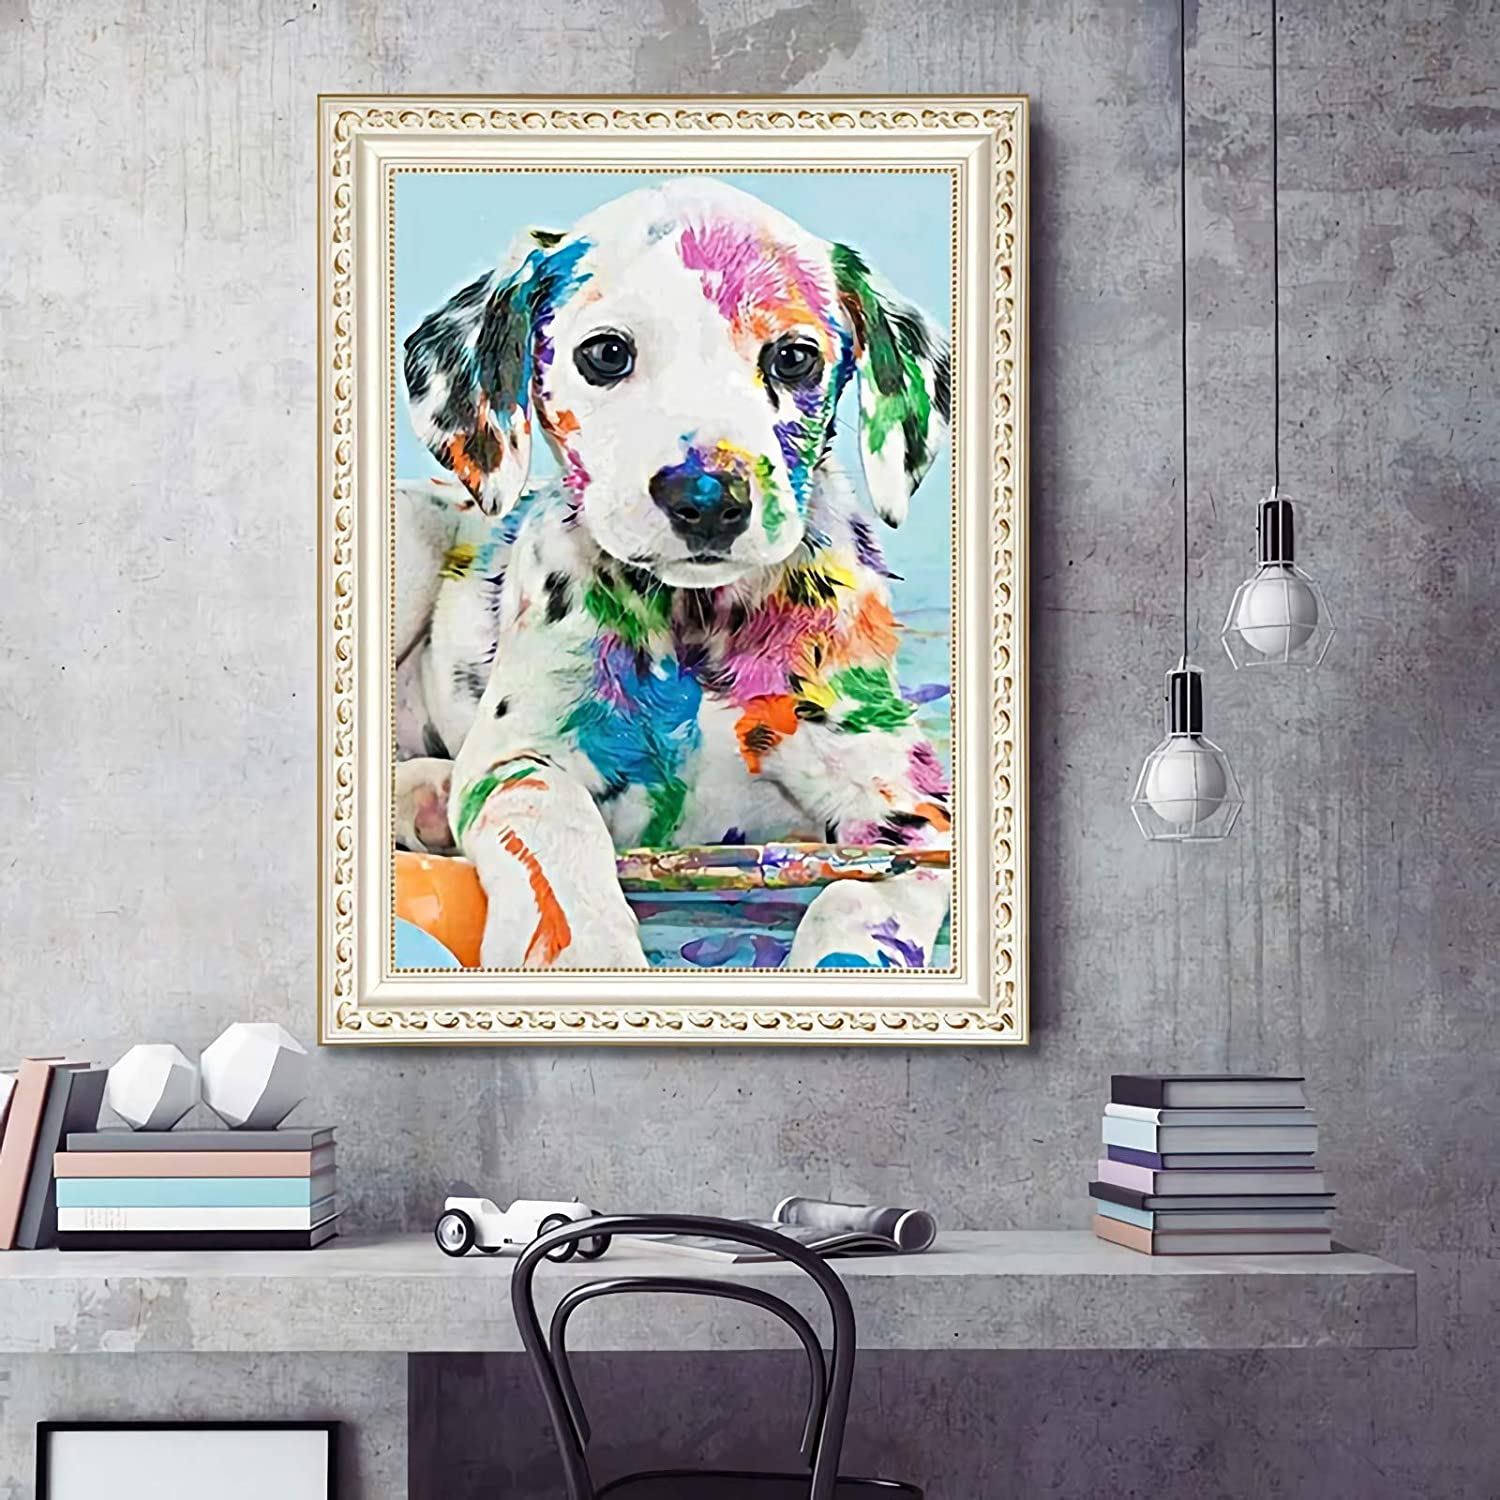 15.74x19.68 5D Diamond Dotz Painting Soft Feeling Canvas Lovely Papillon Dog Full AB Round Drill-Kits for Adults DIY Mosaic Cross Stitch Pattern Handmade Embroidery Picture Kits Wall D/écor-40x50cm